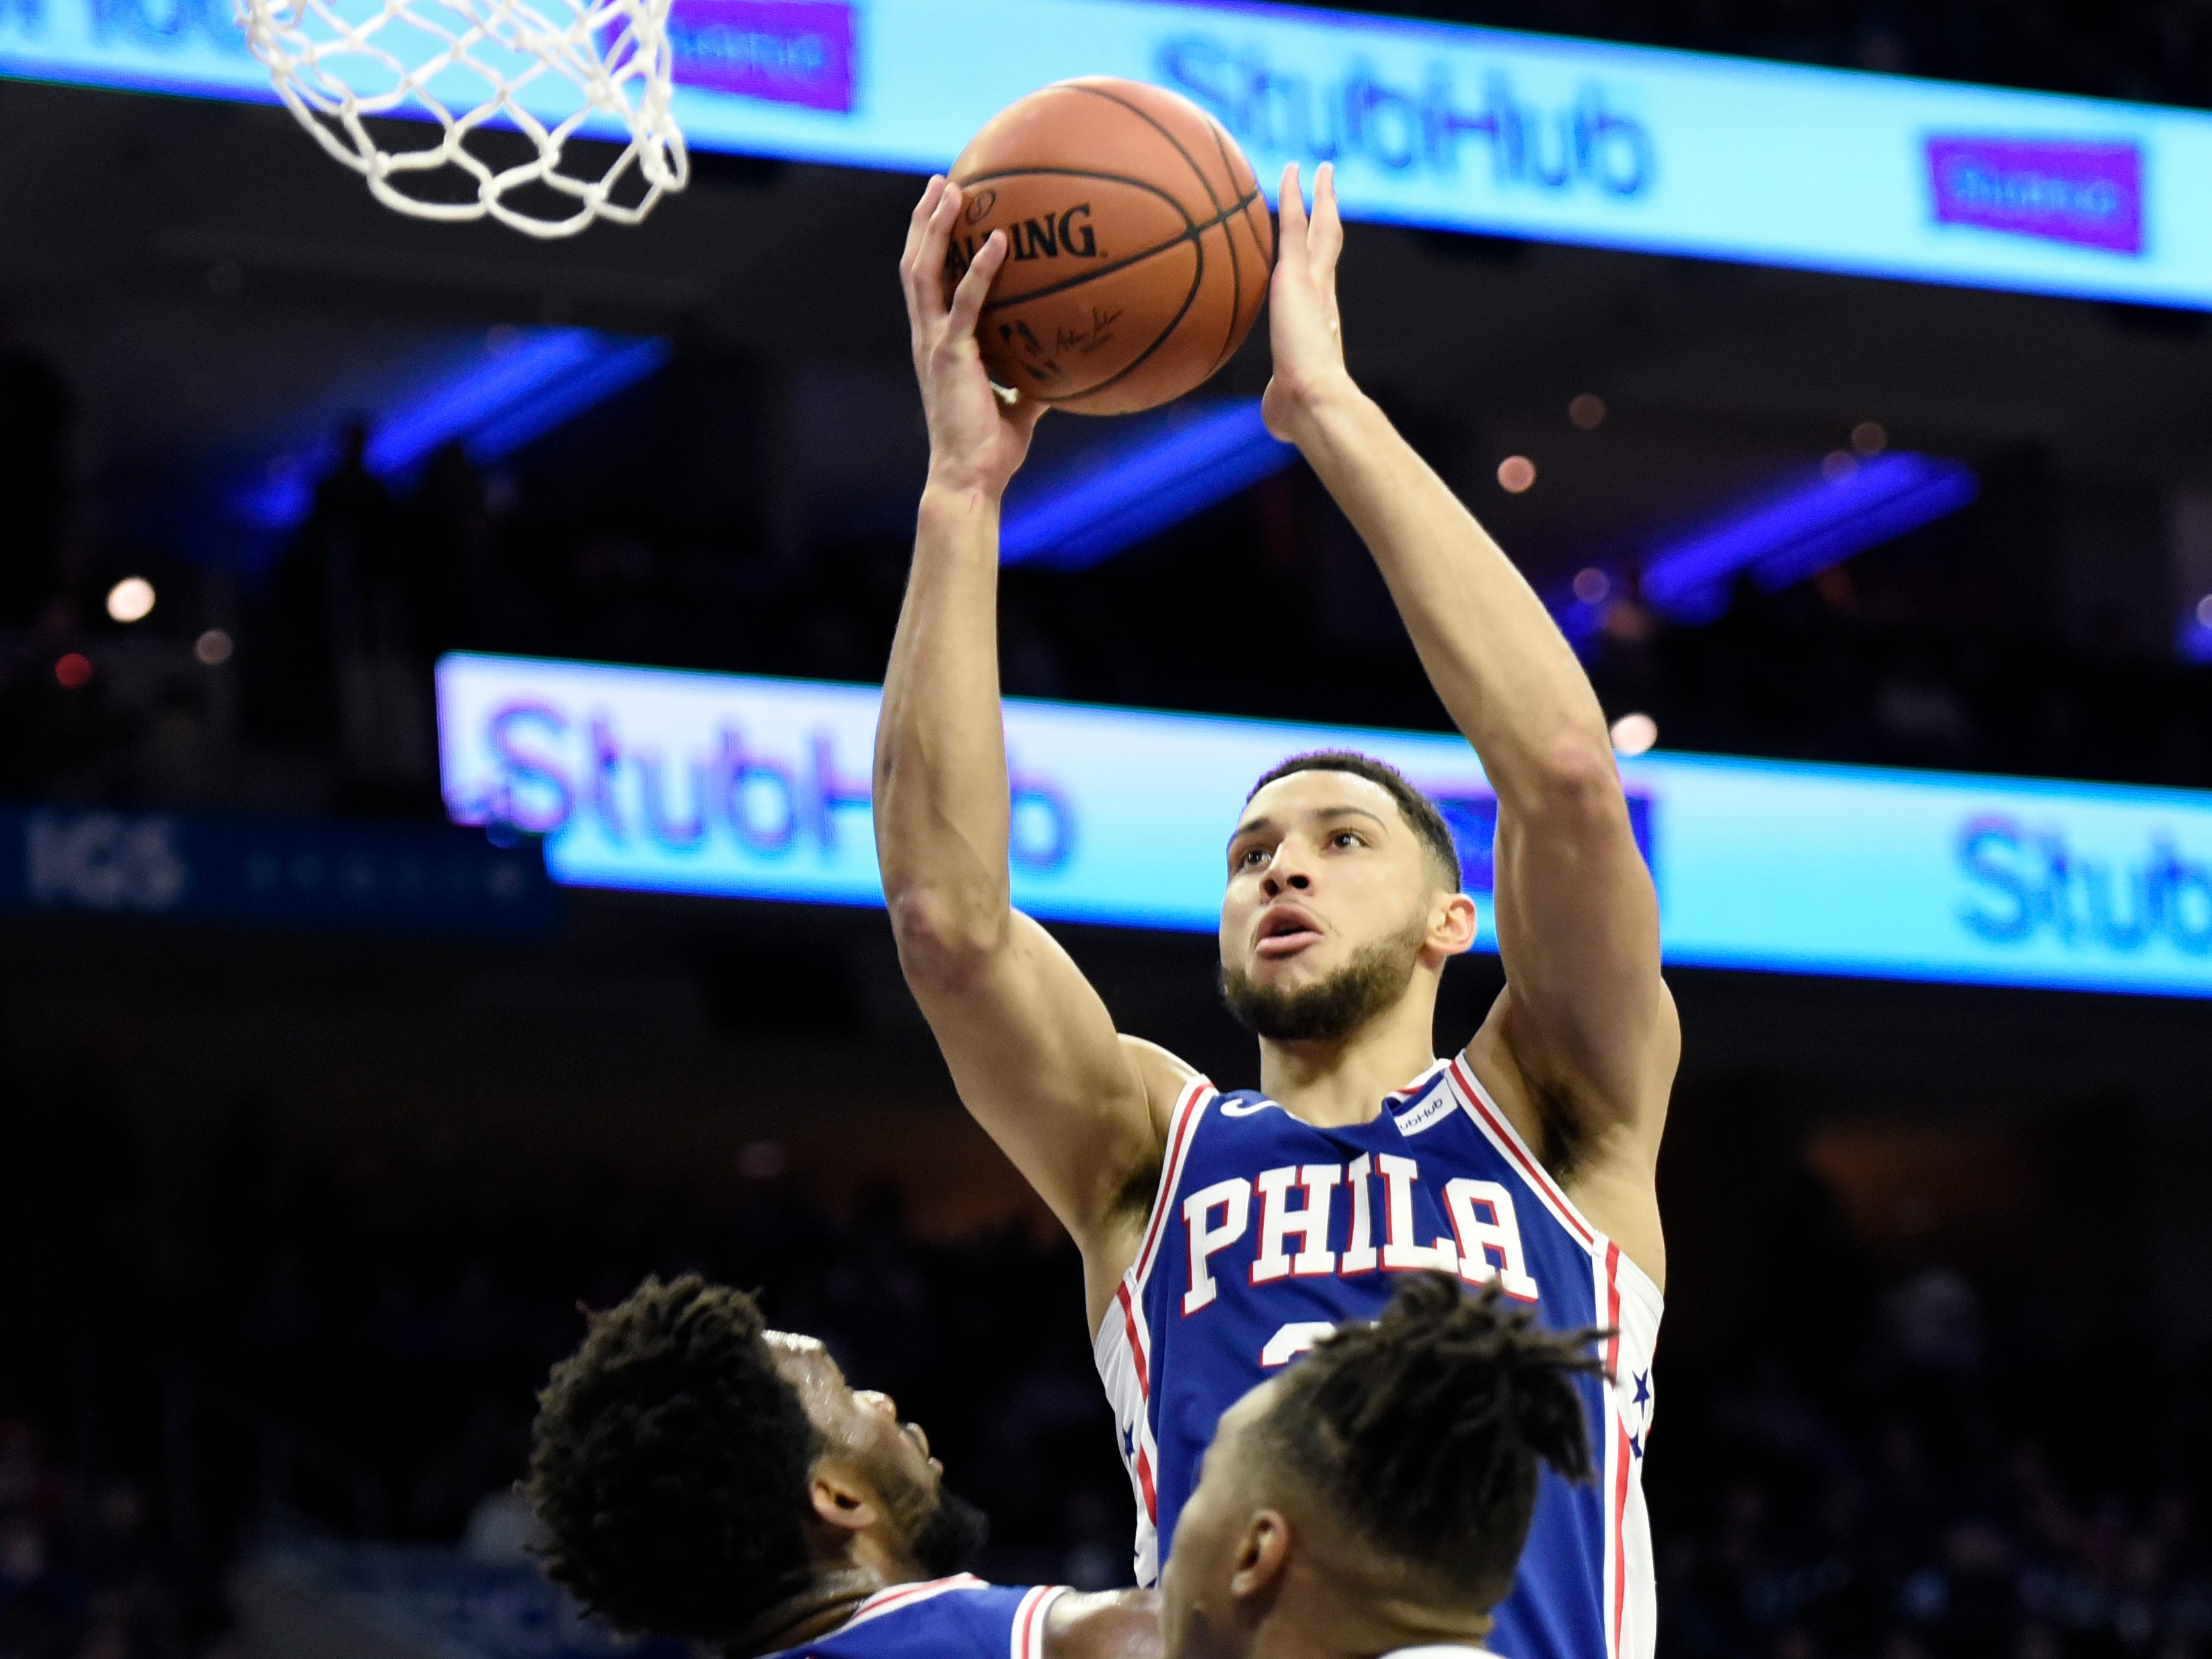 Philadelphia 76ers' Ben Simmons (25) takes a jump shot as Phoenix Suns' Richaun Holmes (21) defends in the second half of an NBA basketball game, Monday, Nov. 19, 2018, in Philadelphia. The 76ers beat the Suns 119-114. (AP Photo/Michael Perez)